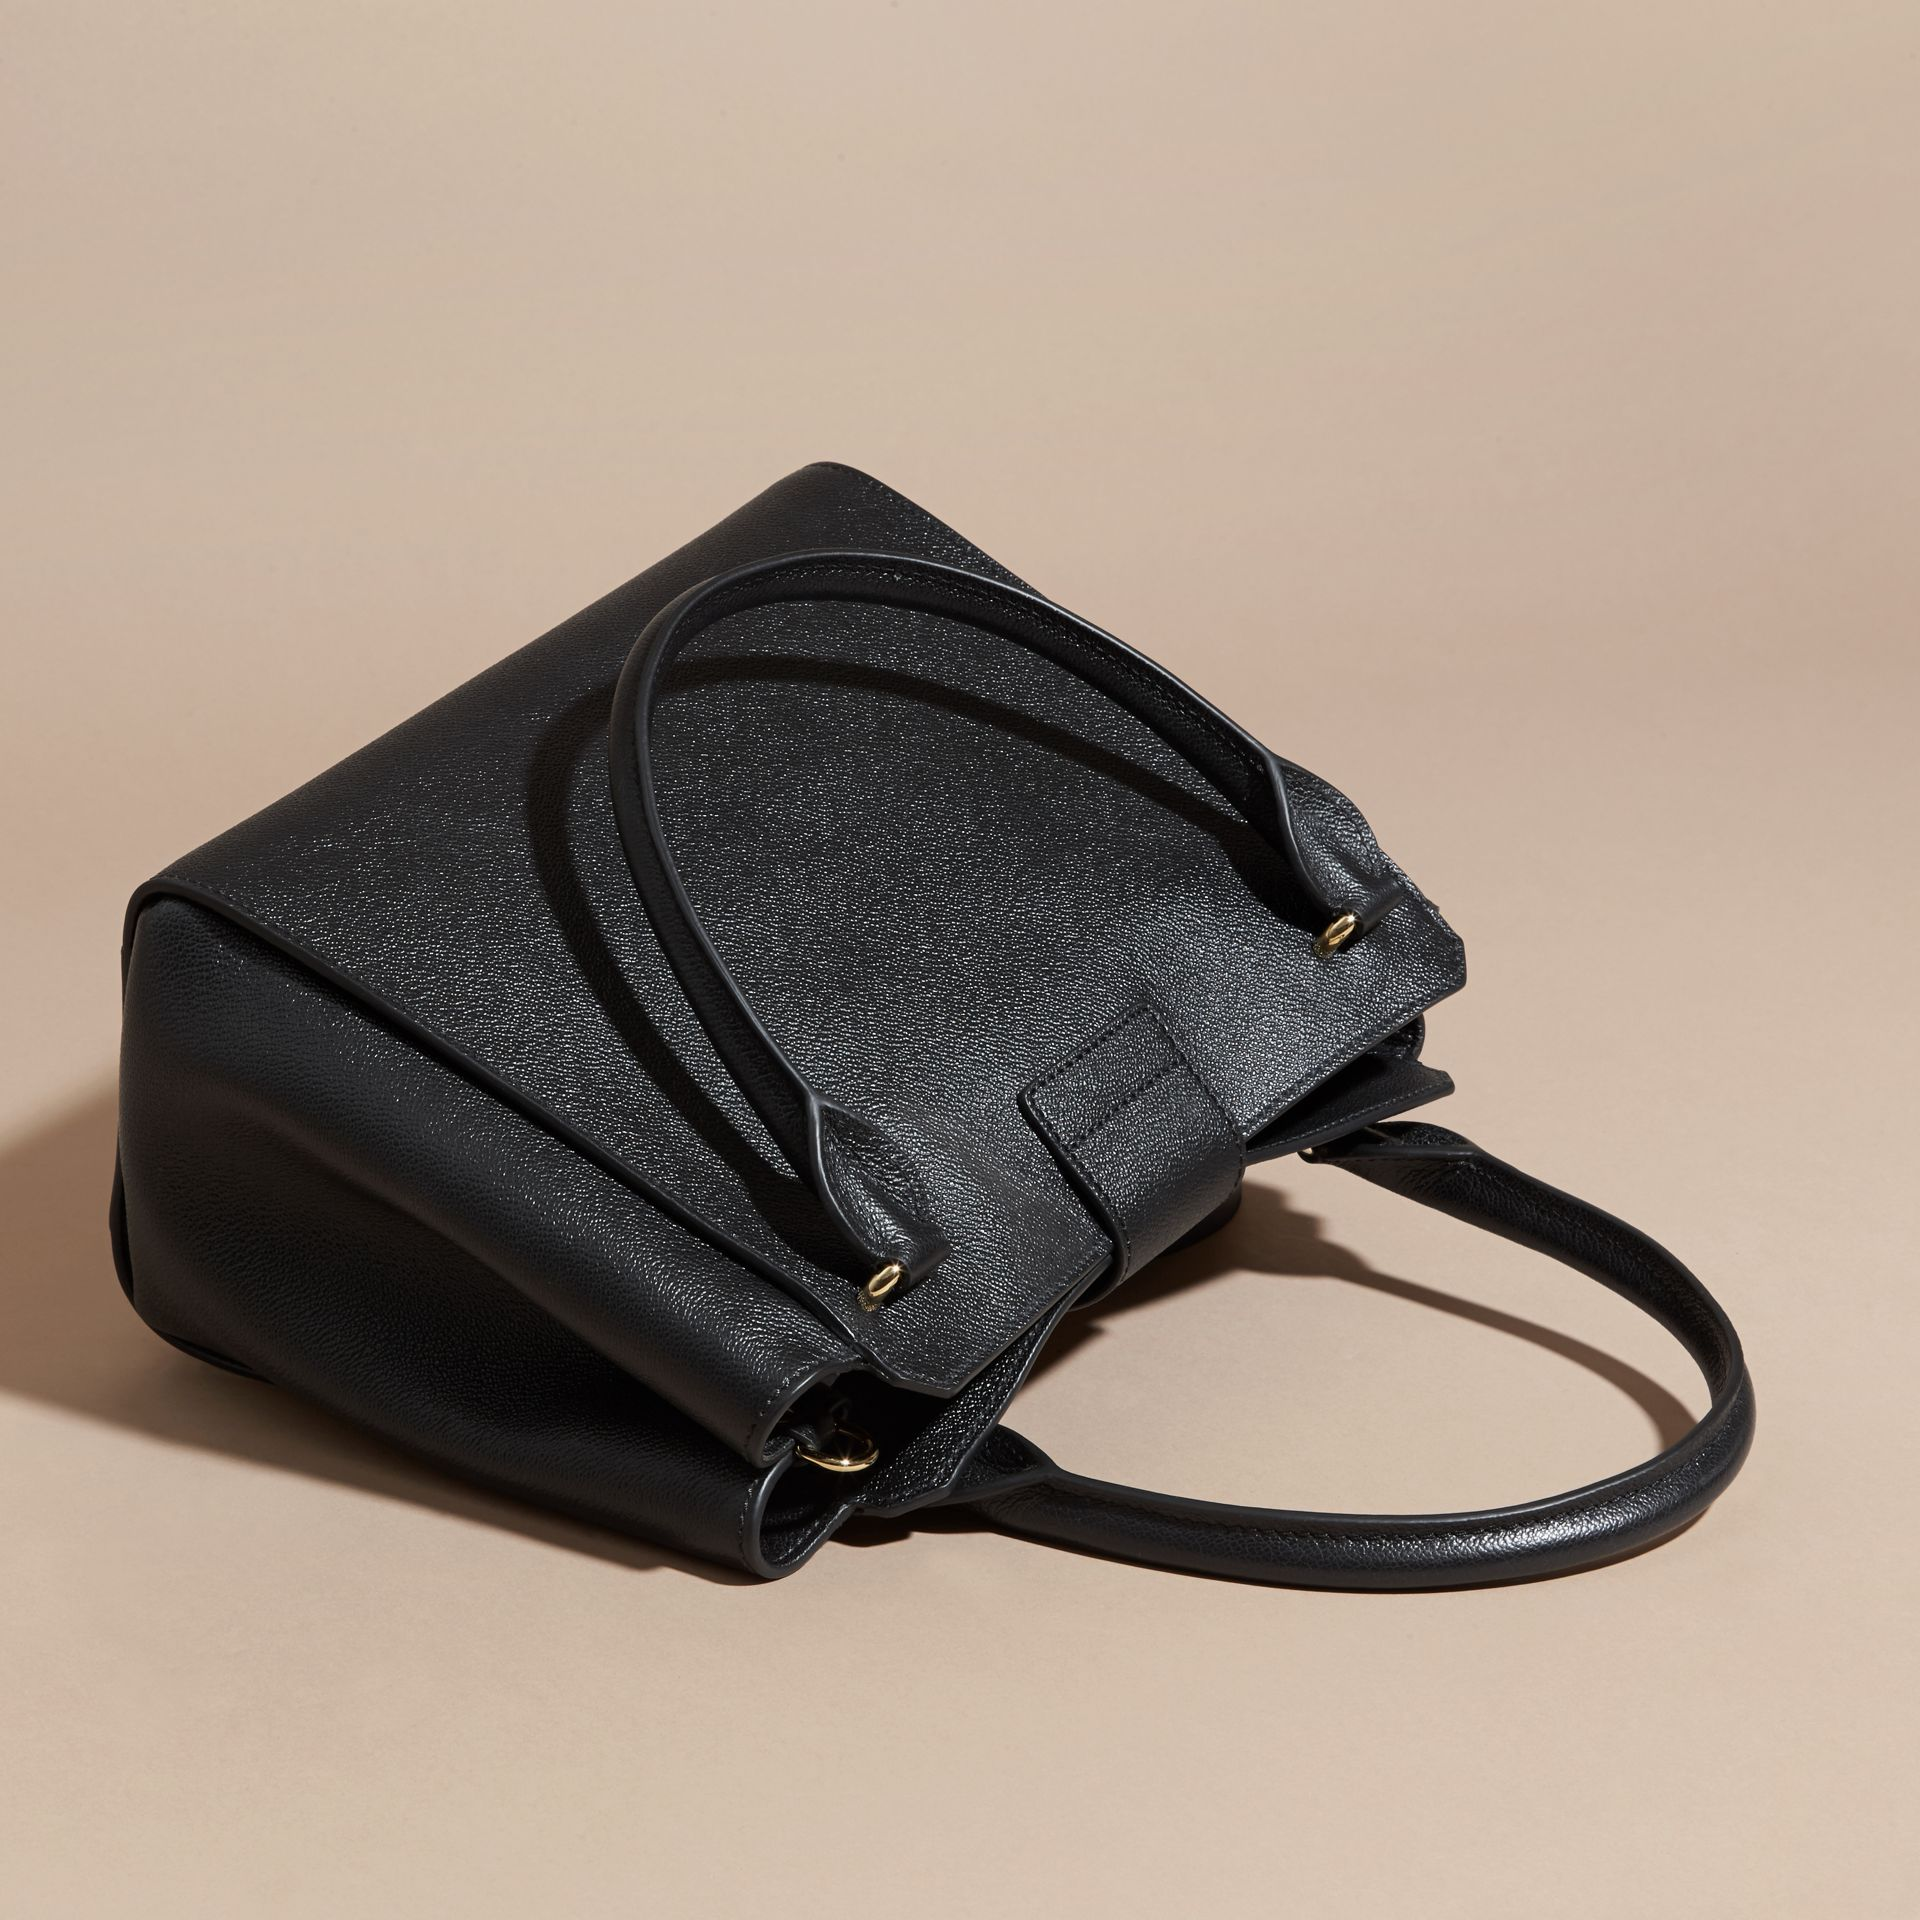 Noir Sac tote The Buckle medium en cuir grené Noir - photo de la galerie 5